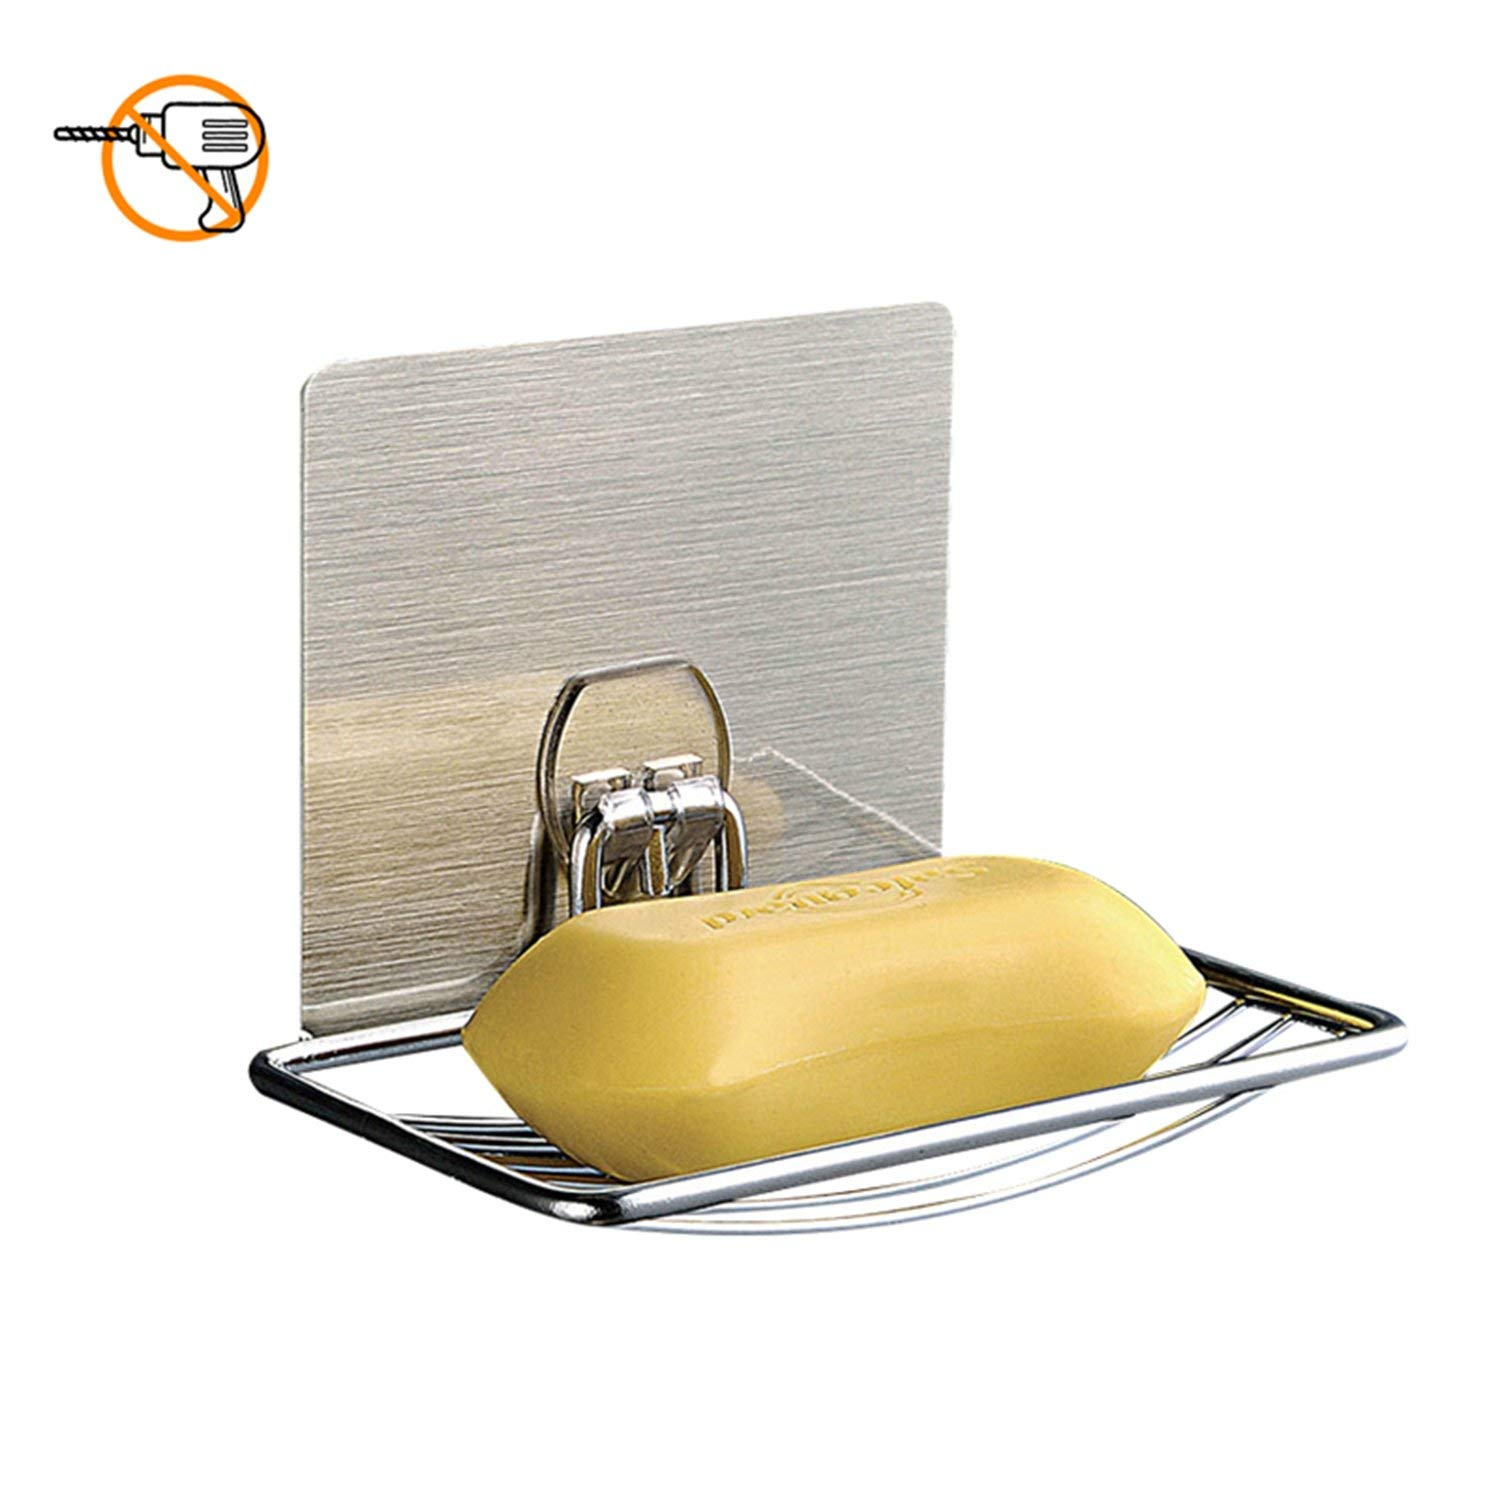 Plabingo Soap Dish, Wall Mounted Soap Dish Holder, Self-Adhesive & Reusable Stainess Steel Soap Dish Tray, for Kitchen & Bathroom,Suitable for Ceramic Tile,Plastic,Glass & More,TZ-5003(Chrome)